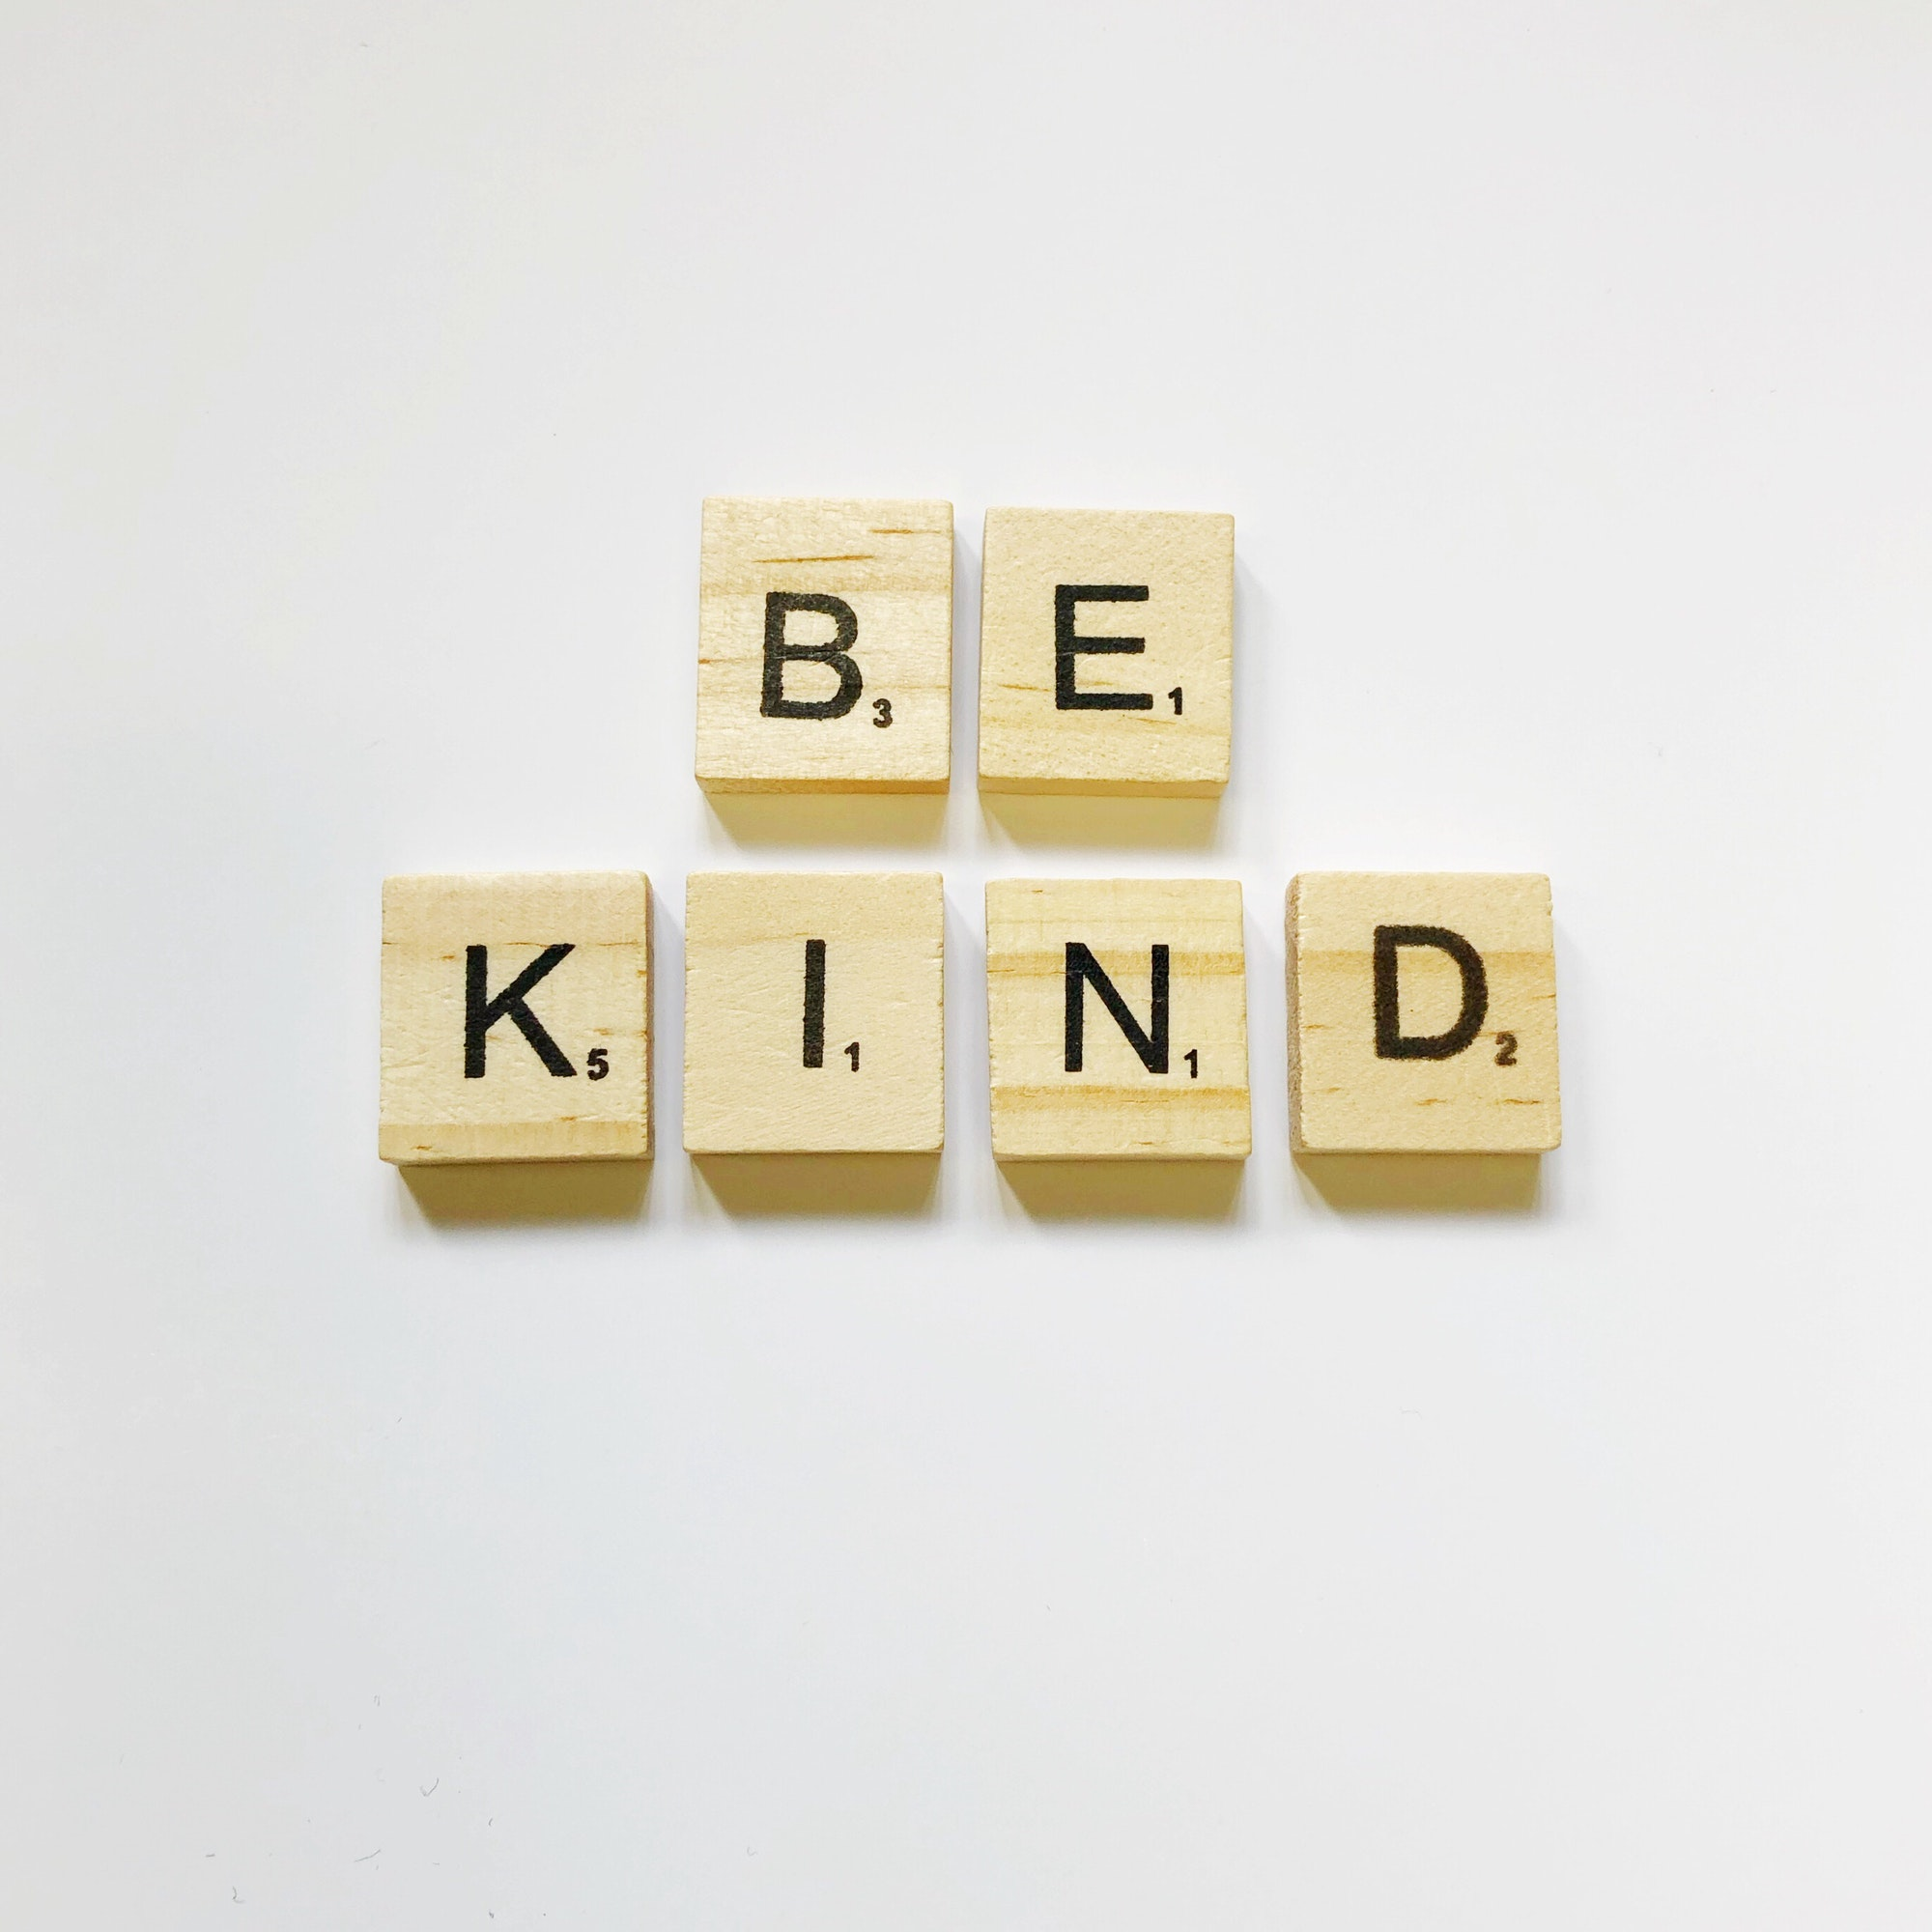 Be kind in wooden letters on a white background